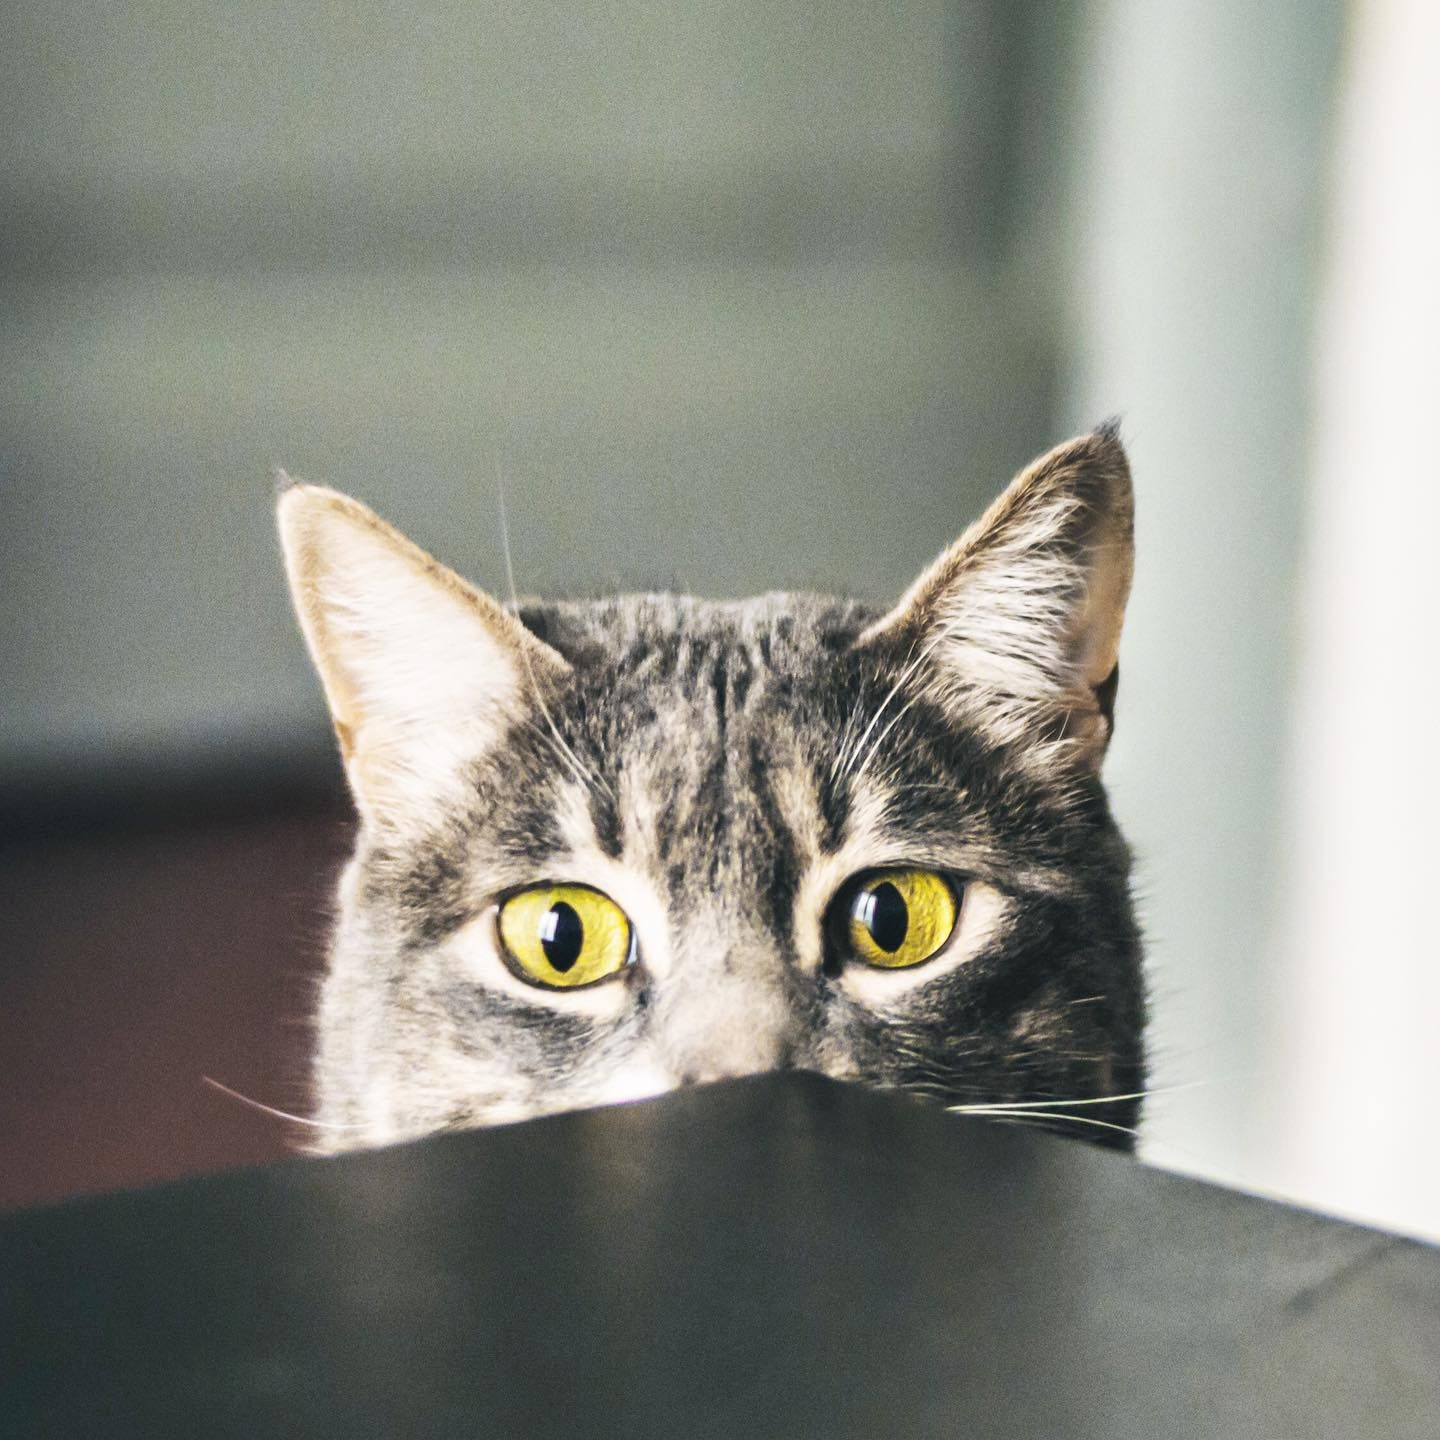 One Second After Hearing The Whipped Cream Can Asodiuesdiari Catsofig Instacat Funnycats Funnykitten Ilovemycat In 2020 Cats Kittens Funny Pets